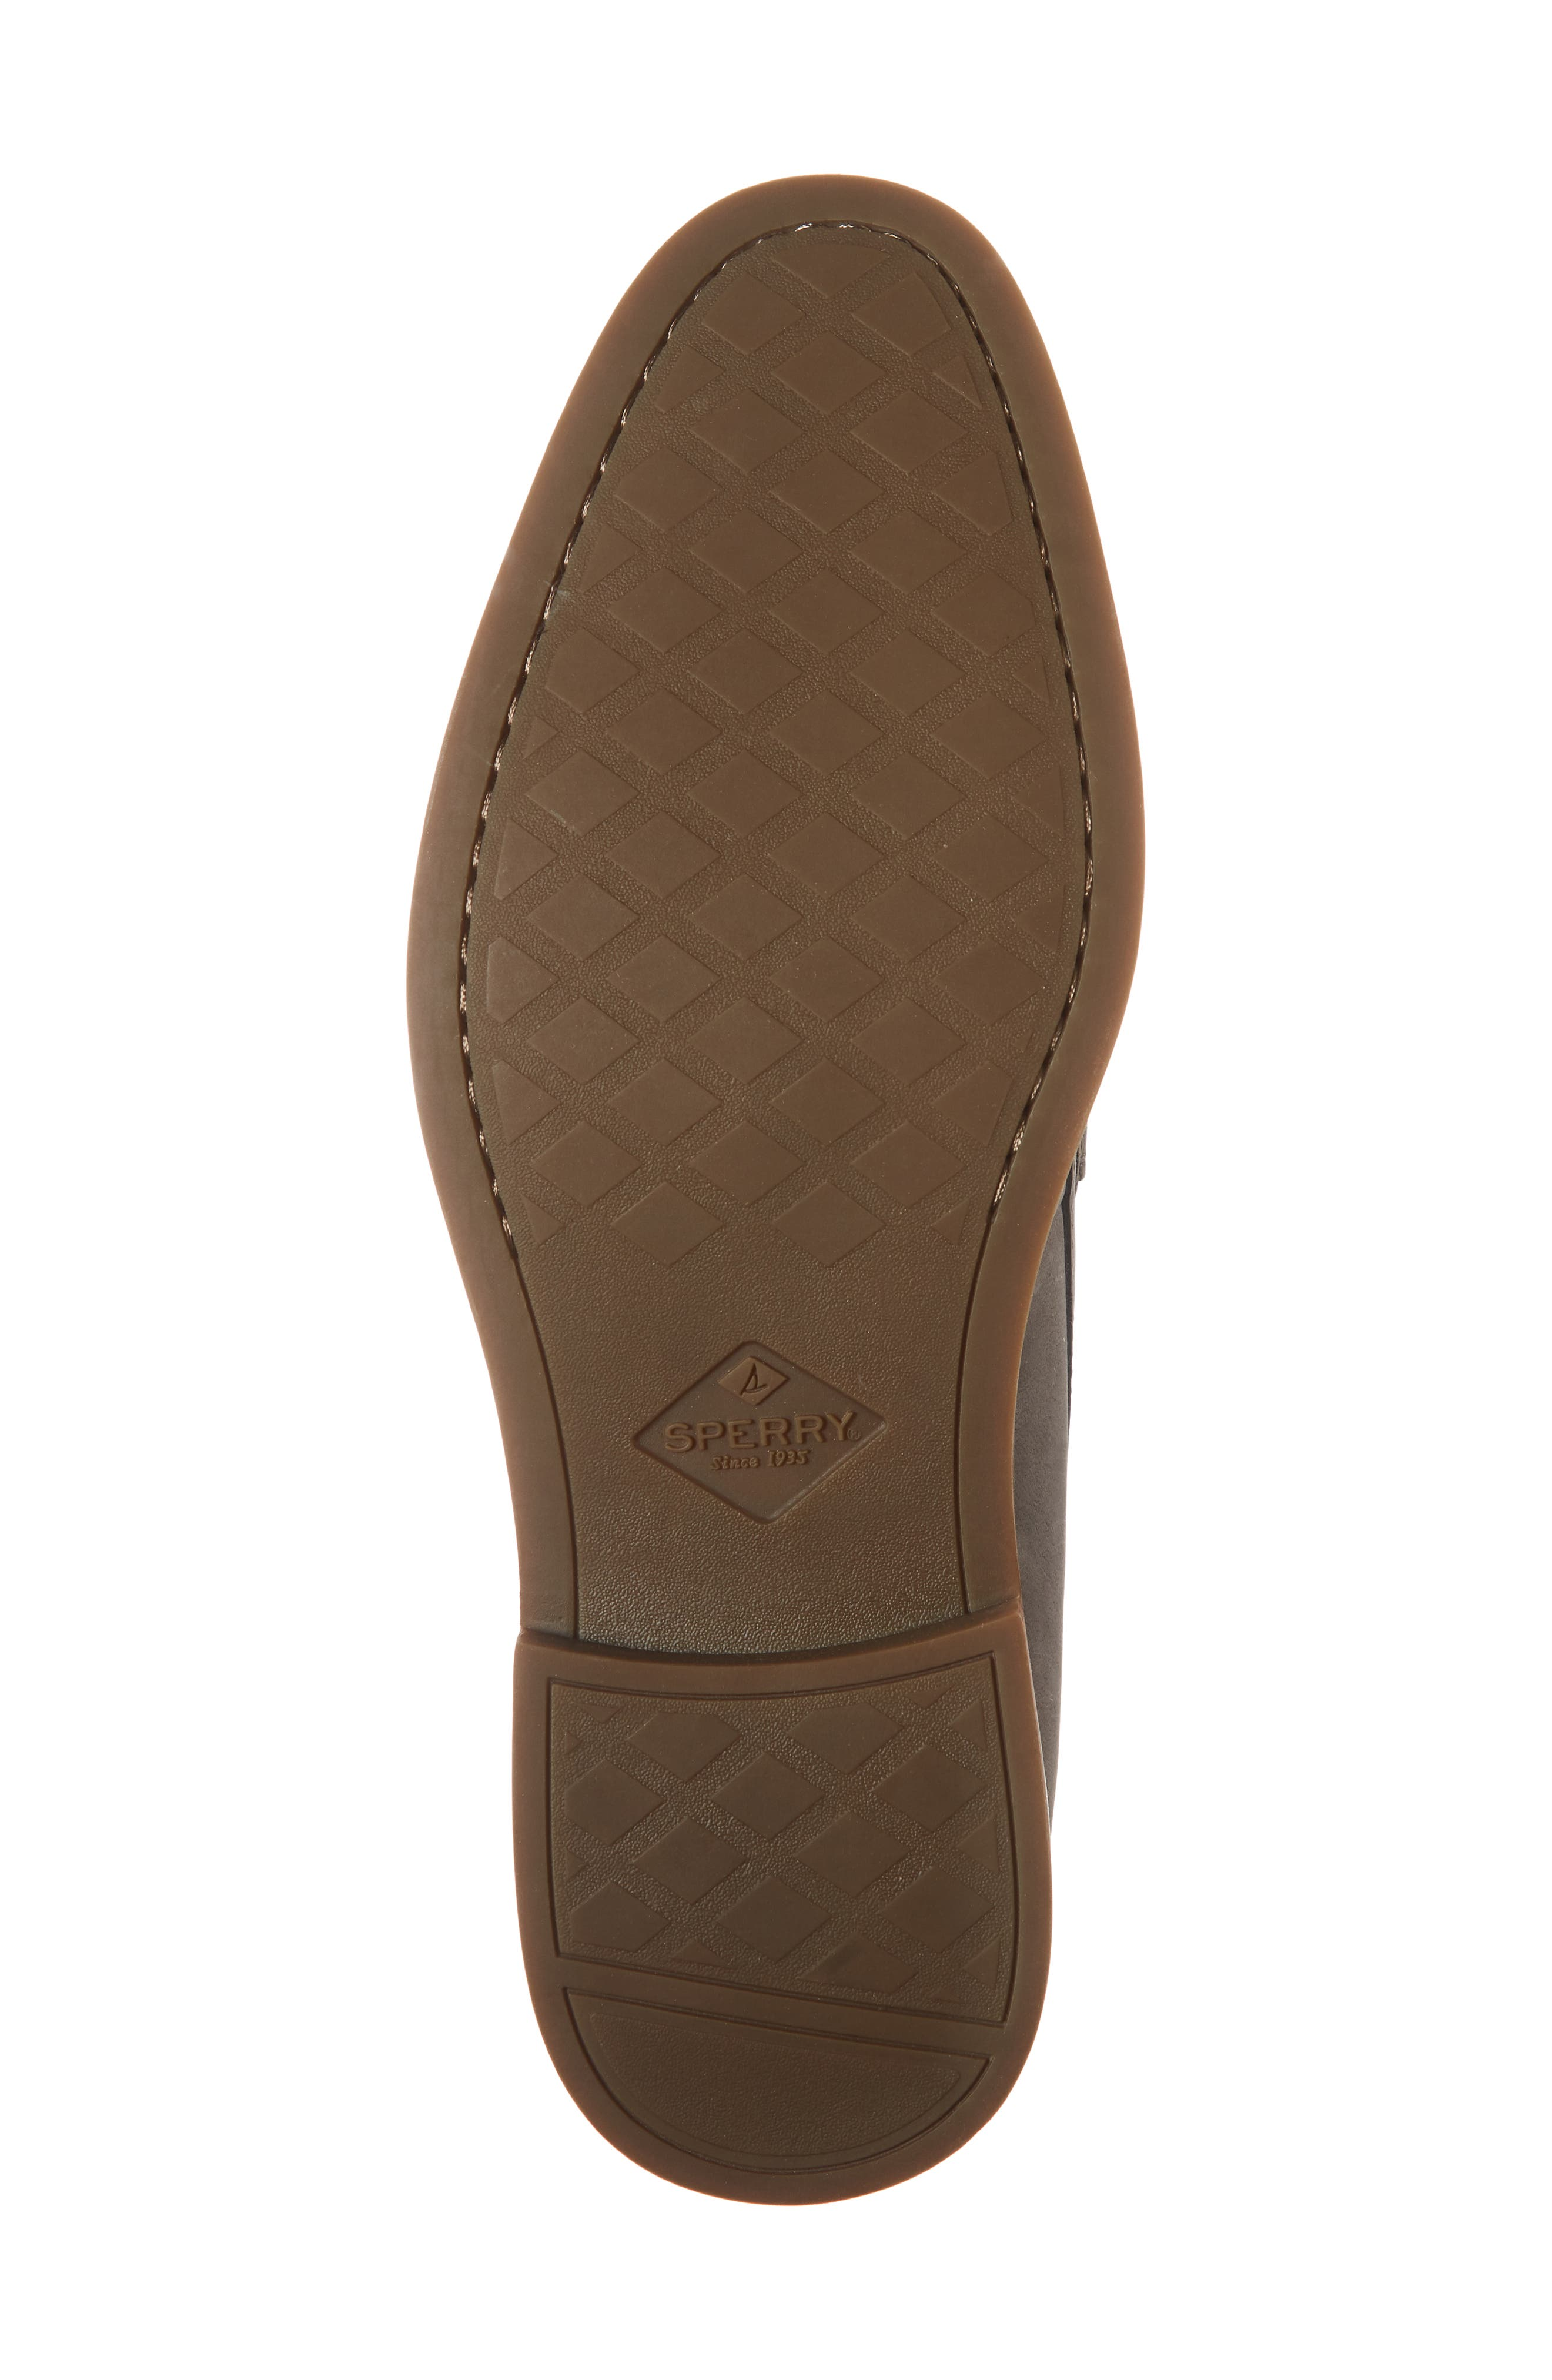 Gold Cup Exeter Penny Loafer,                             Alternate thumbnail 6, color,                             GREY